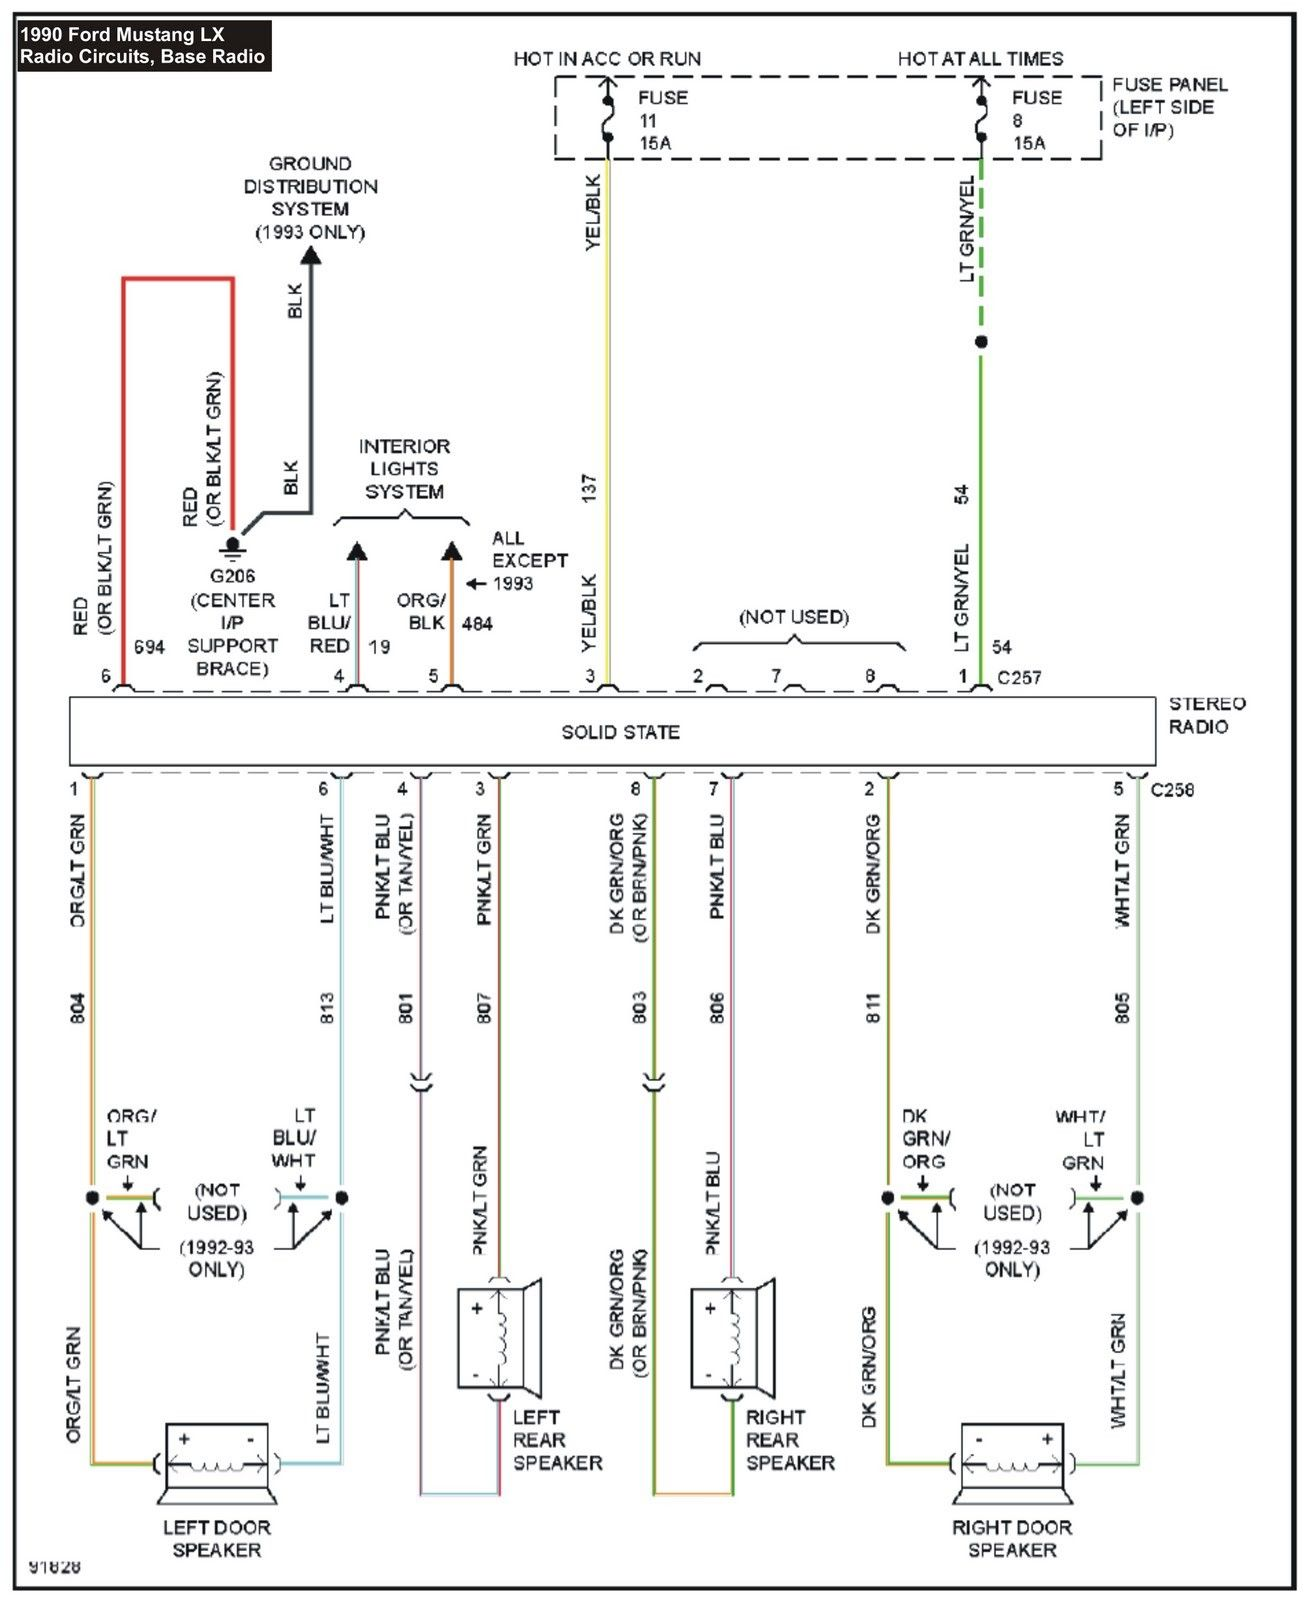 Unique Wiring Diagram For Ac Delco Radio